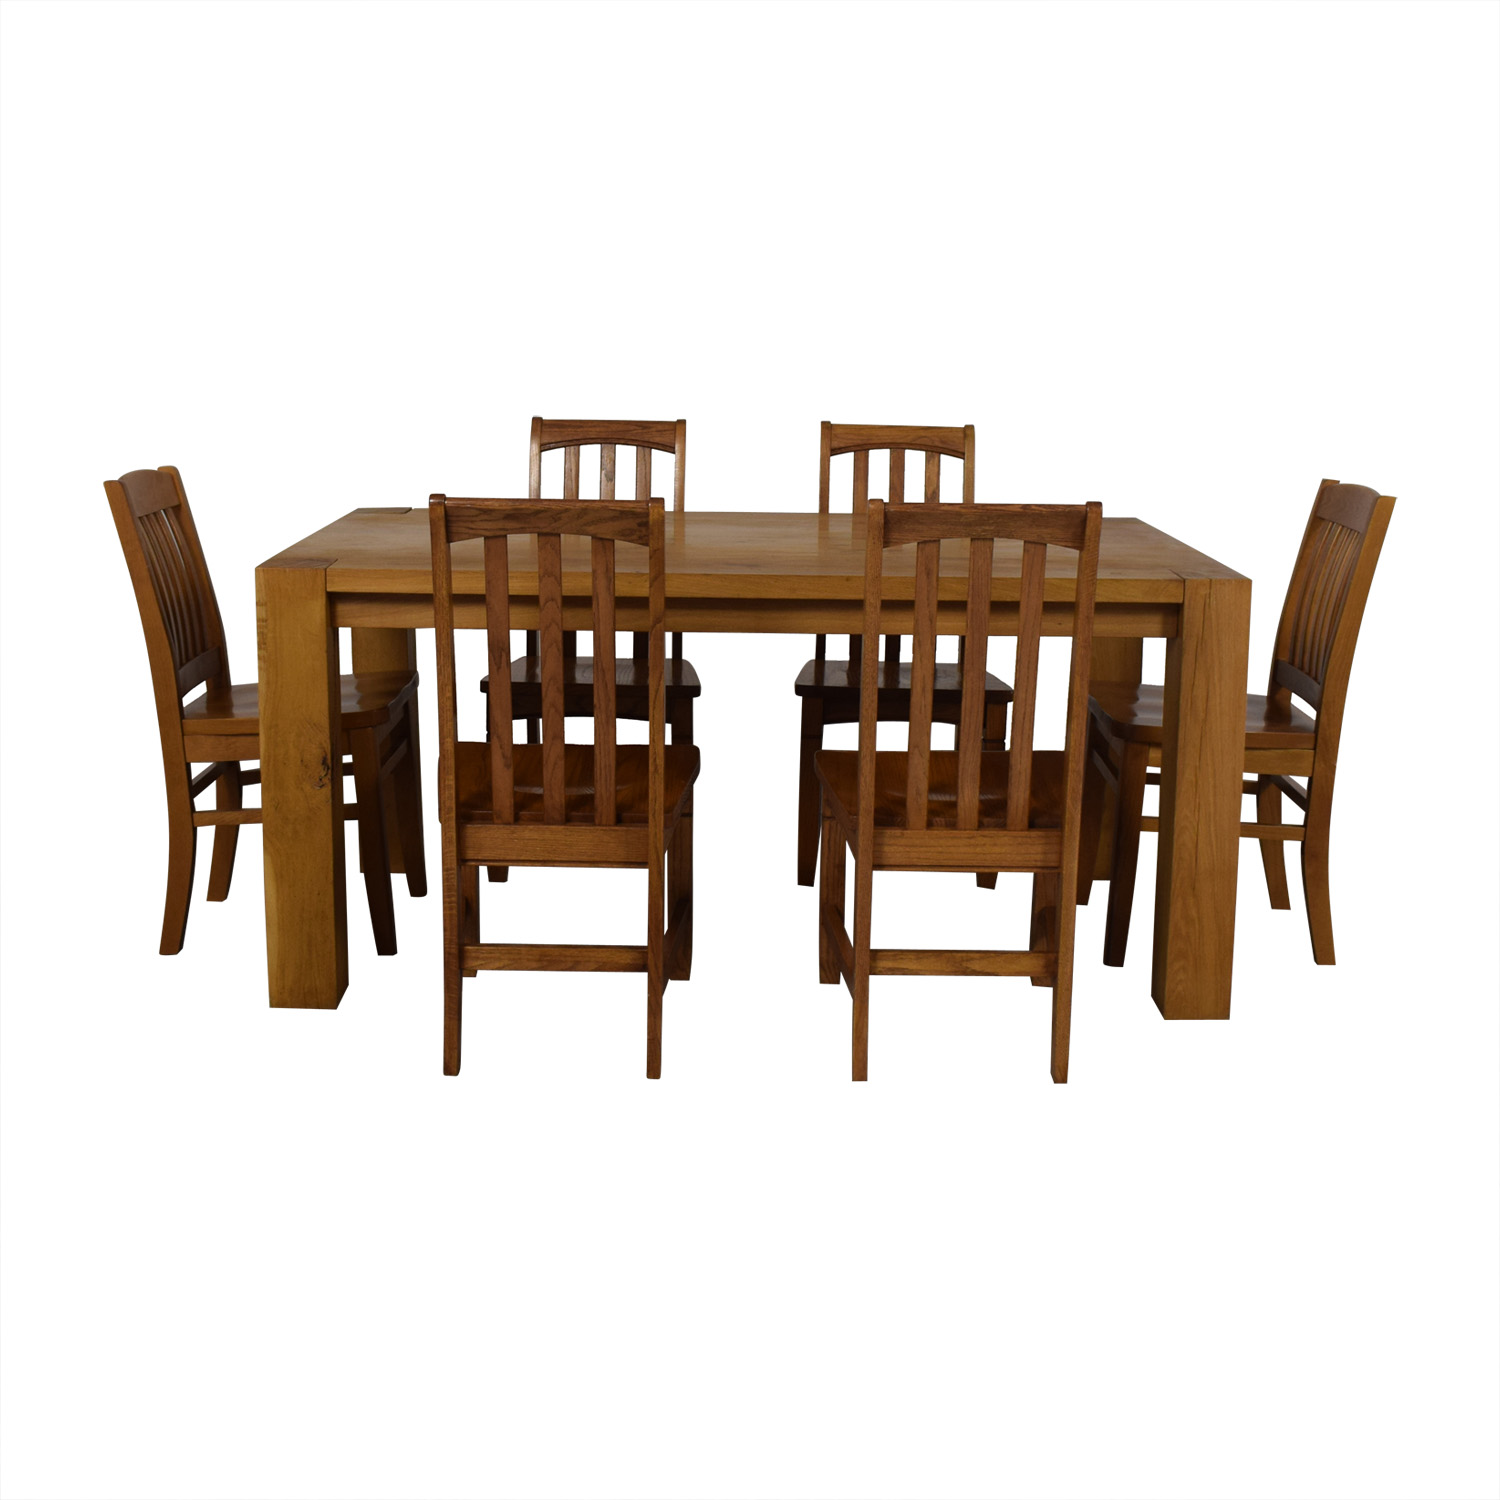 Crate & Barrel White Oak Dining Set sale